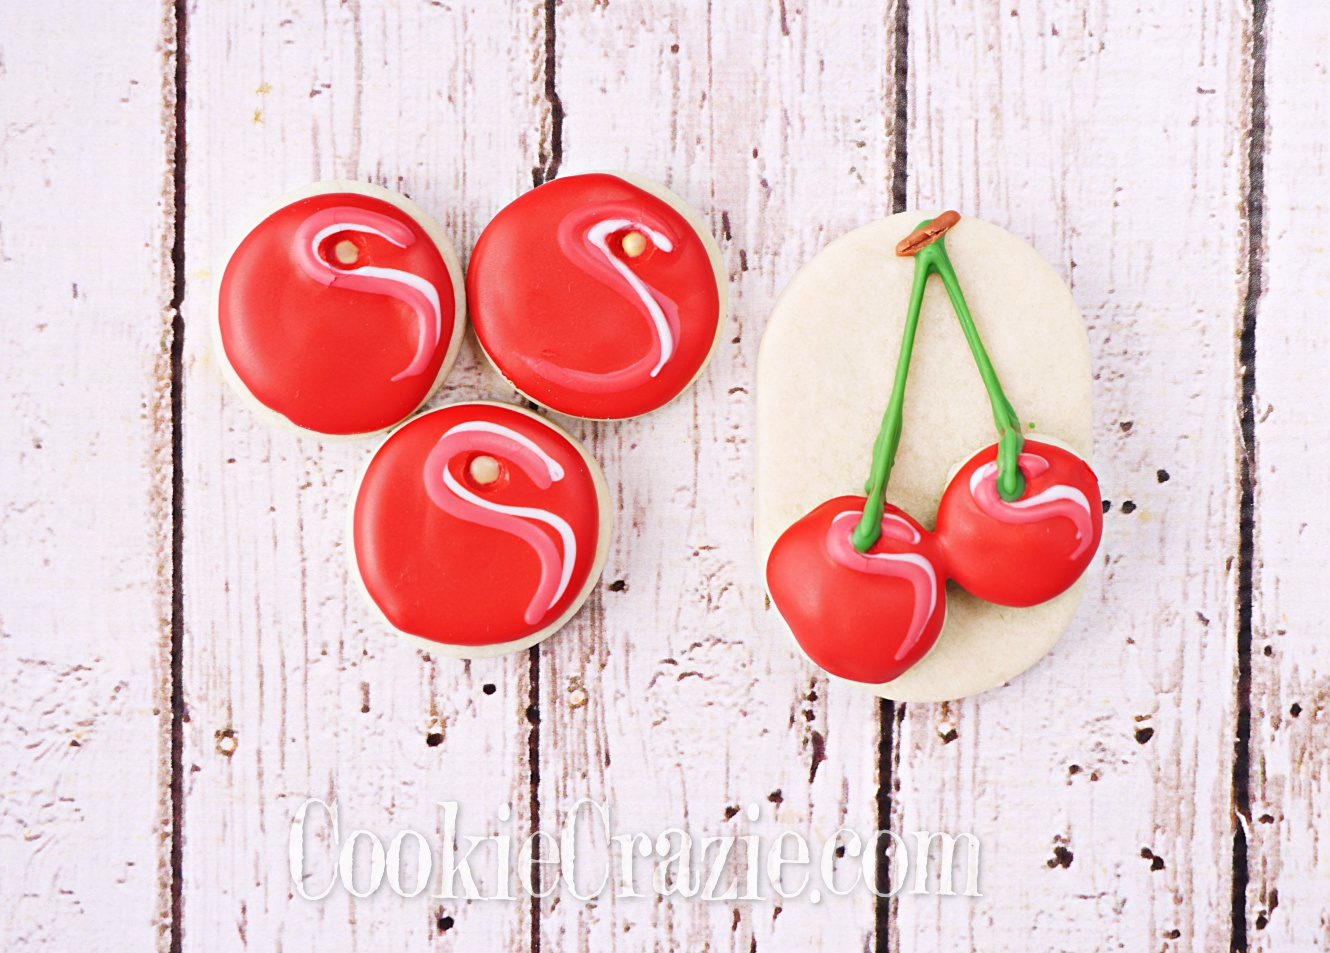 Cherries Decorated Sugar Cookies YouTube video  HERE